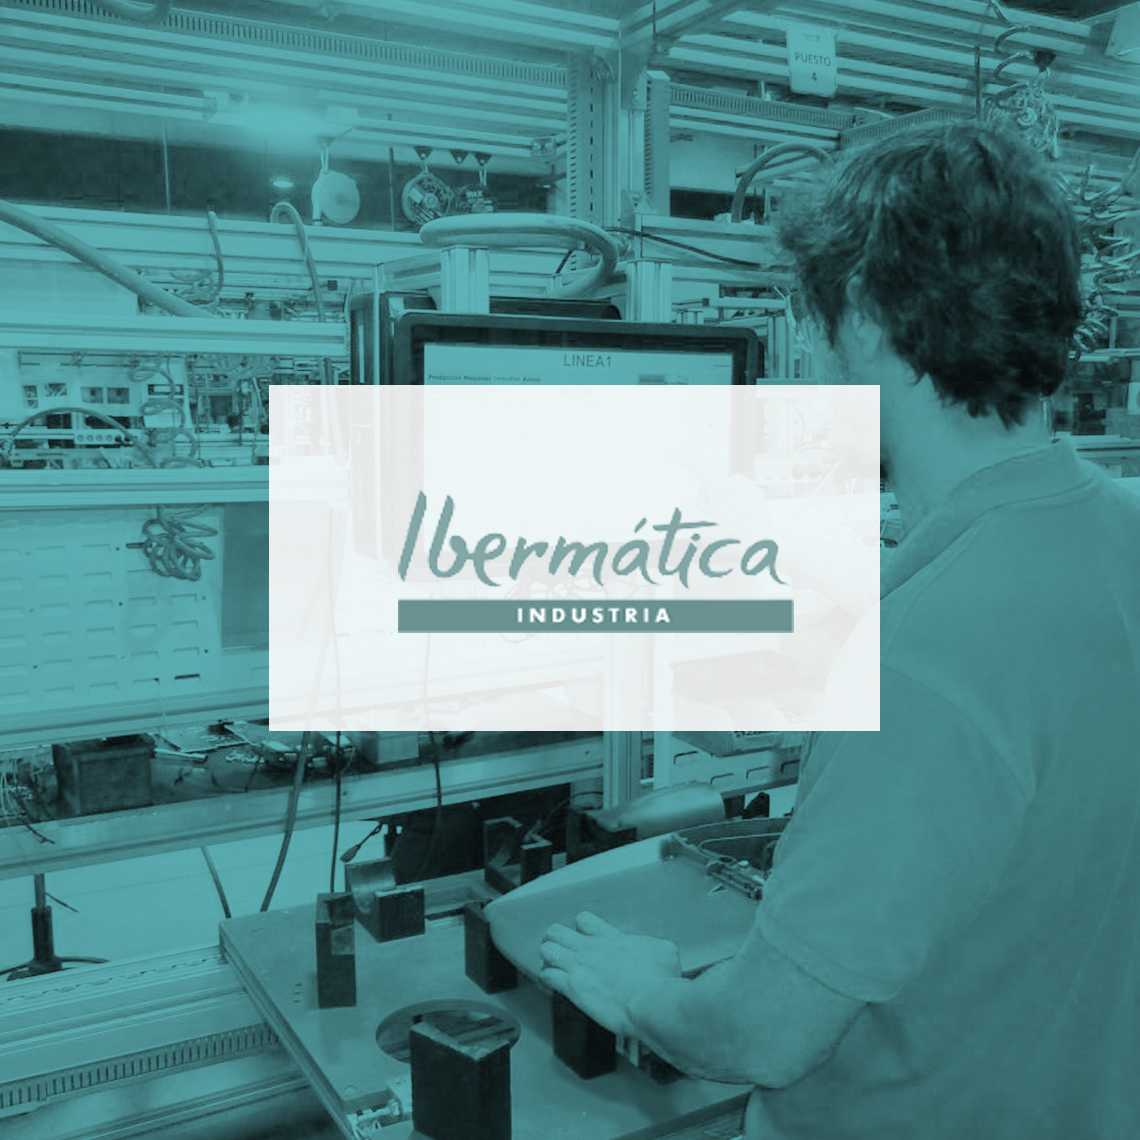 ibermatica industria_case studies